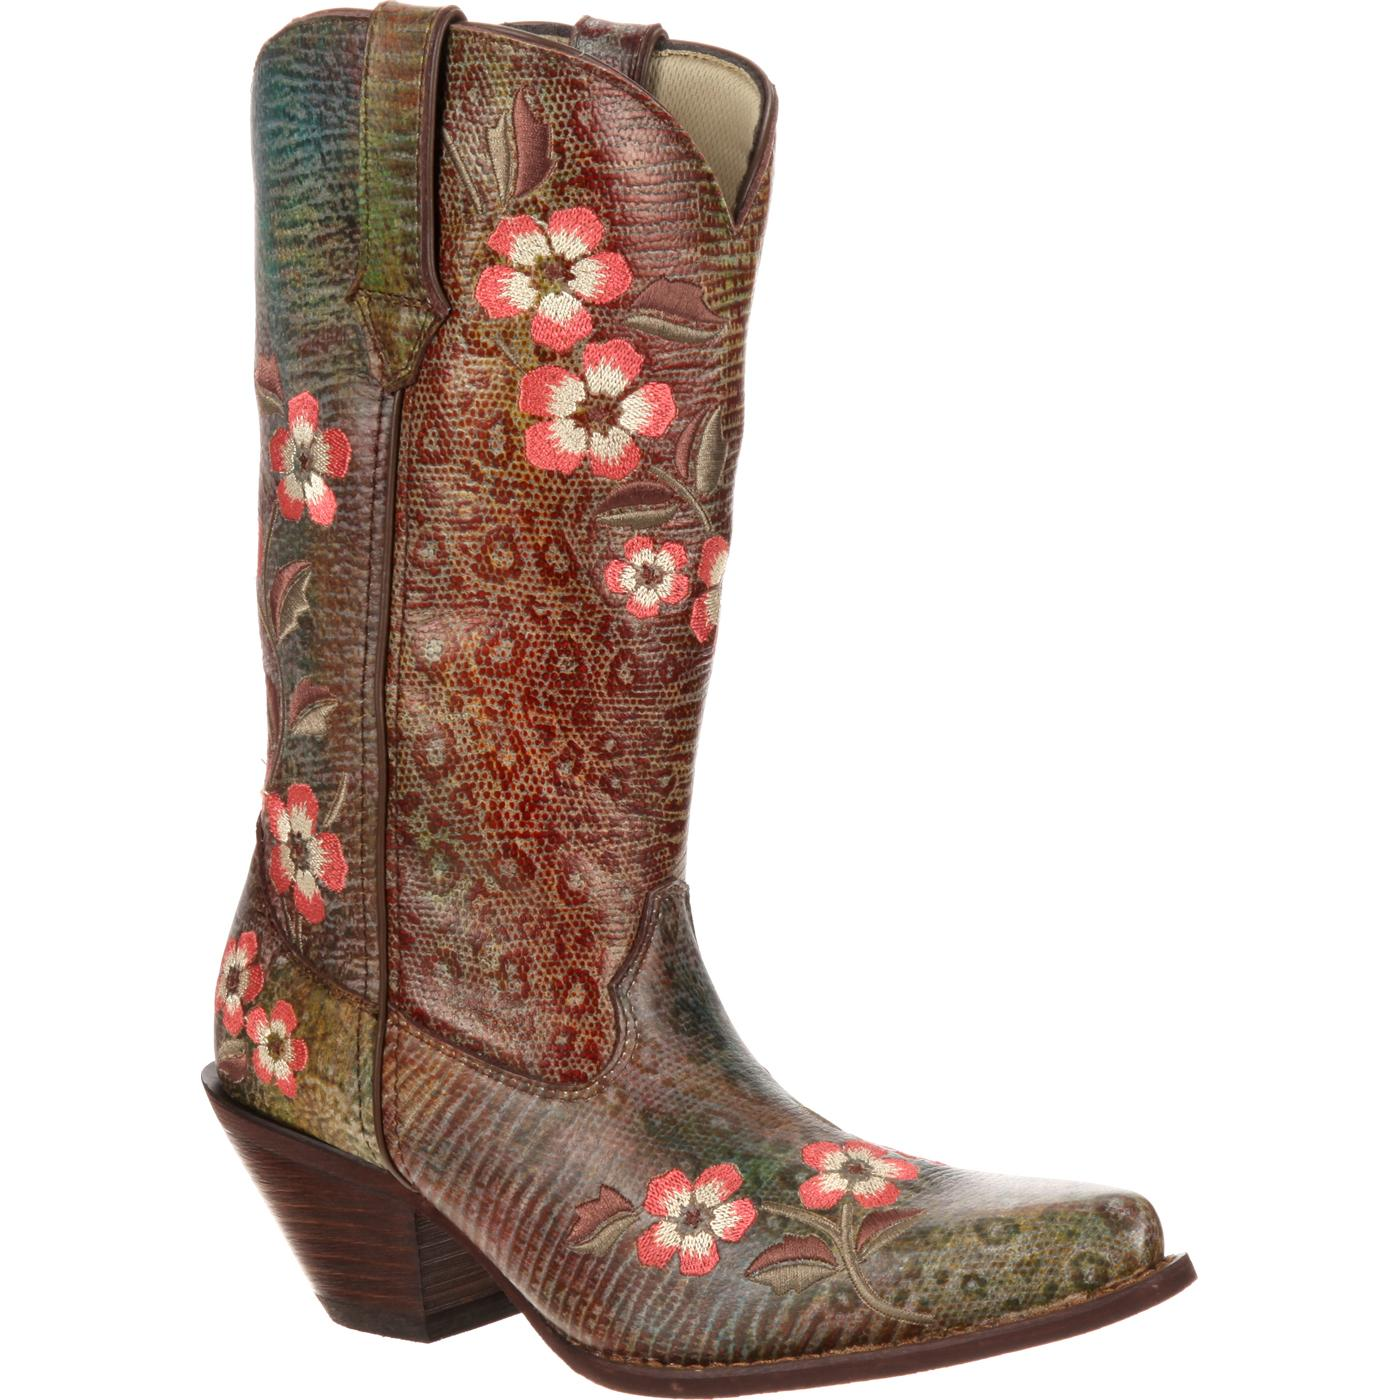 3f65ea62ecb Crush by Durango Women s Floral Embroidered Western Boot